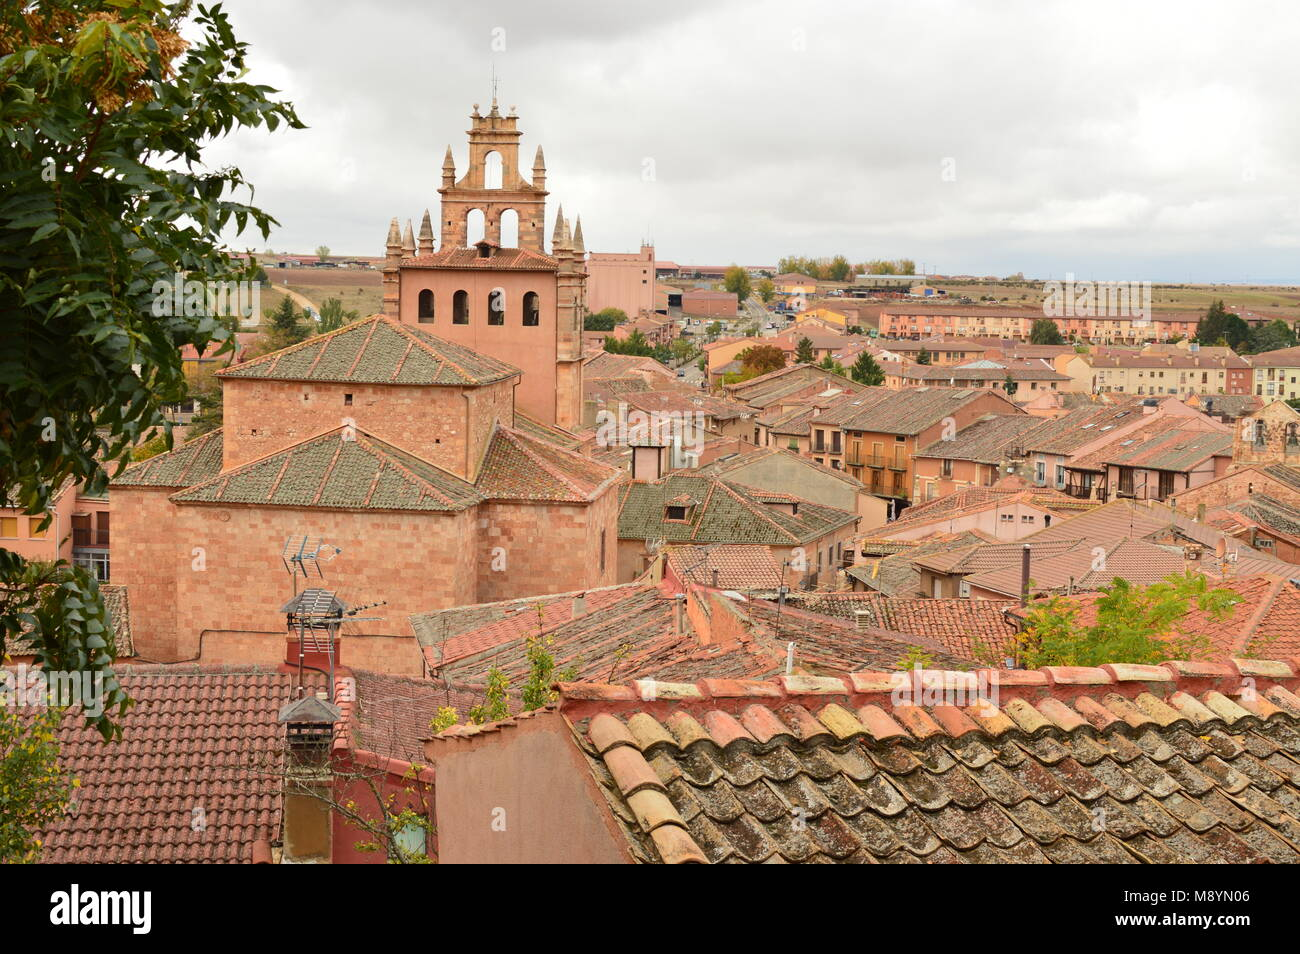 Aerial Views Of The Town Of Ayllon Cradle Of The Red Villages In addition Of Beautiful Medieval Town In Segovia. - Stock Image